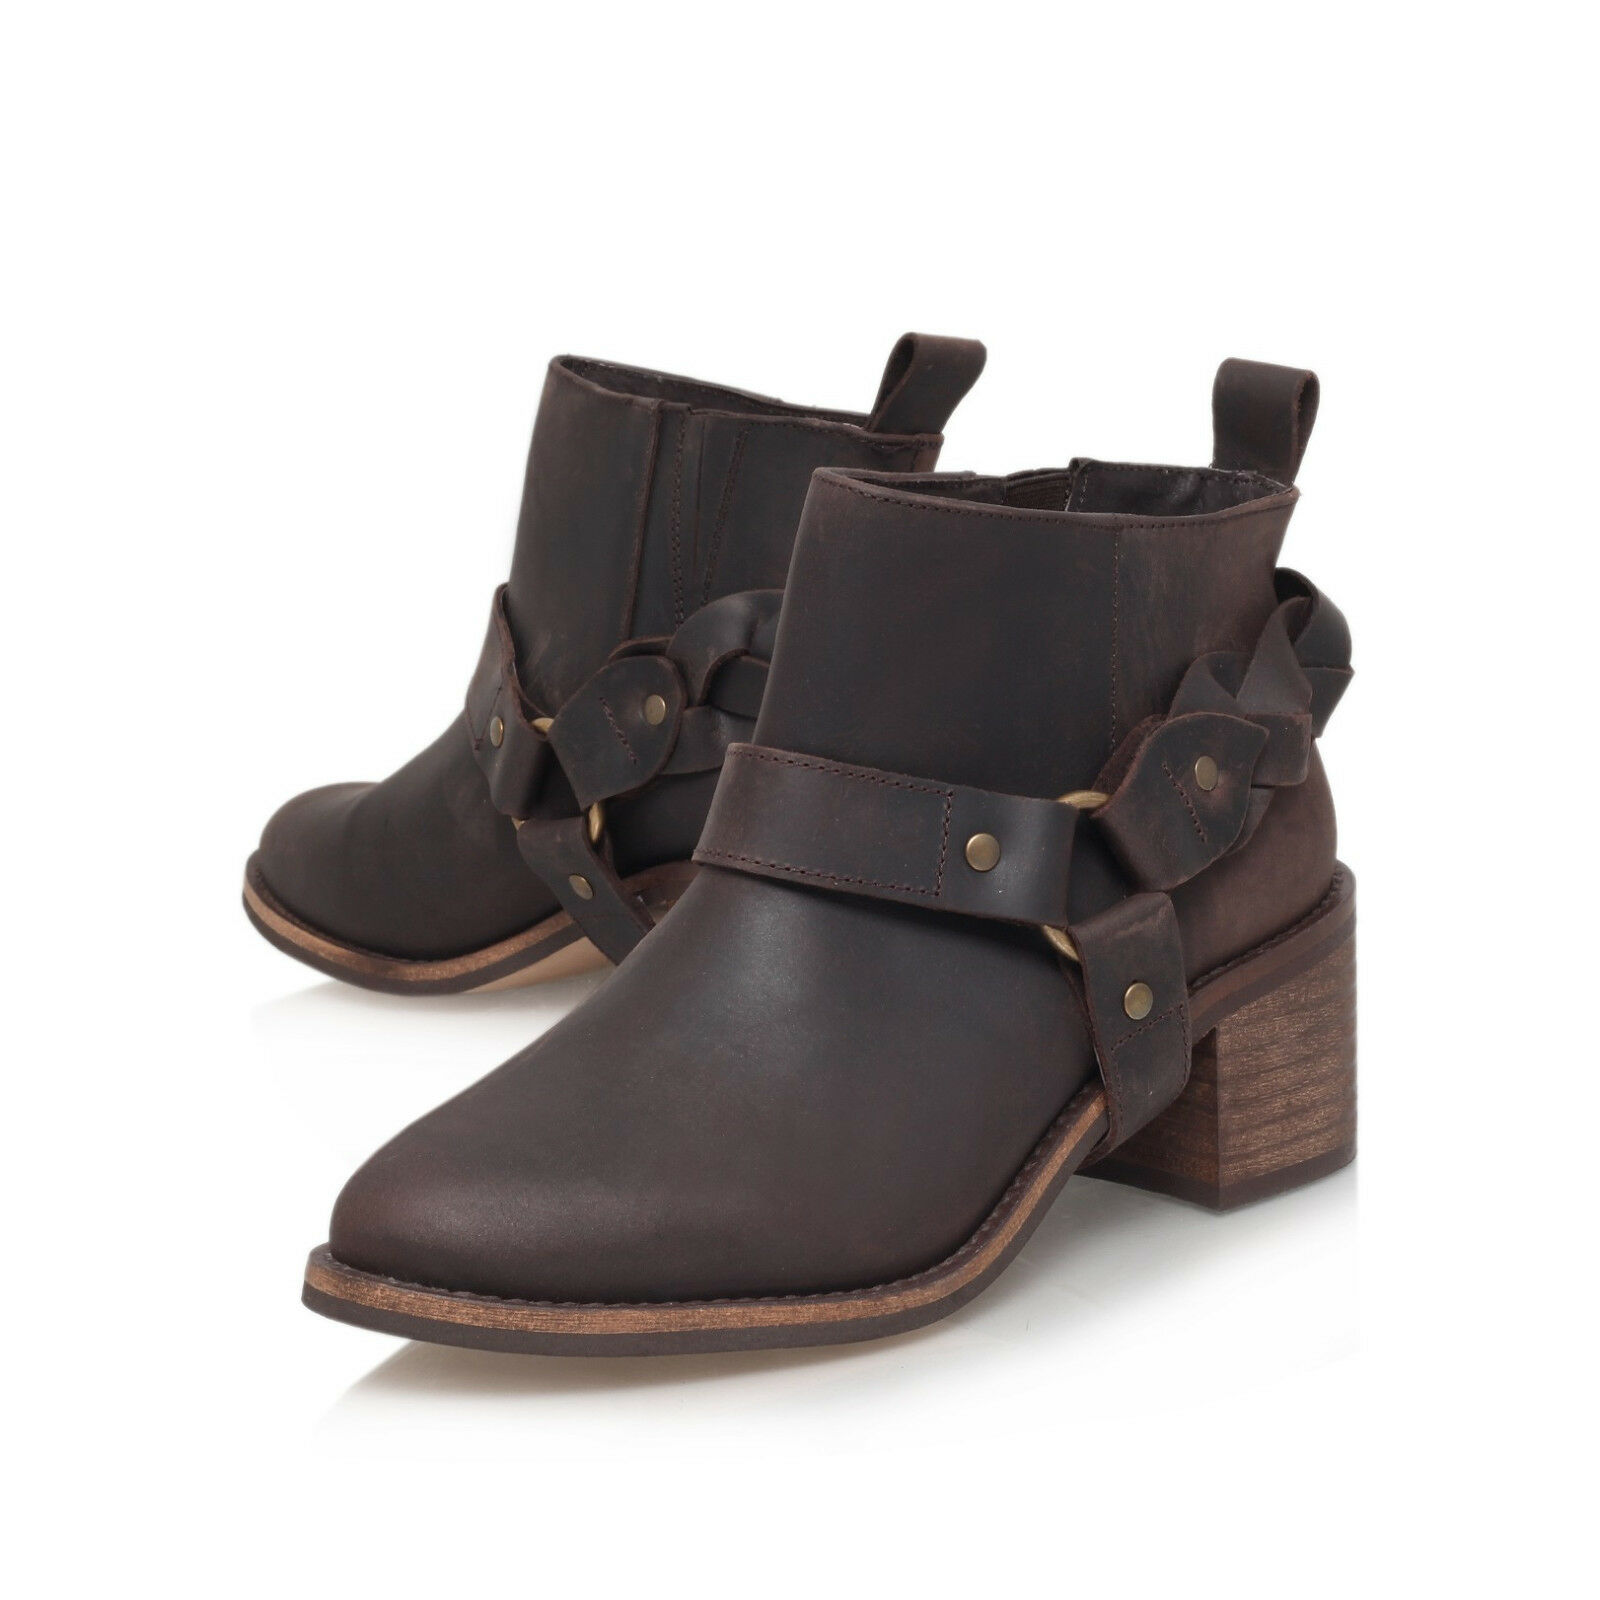 Grandes zapatos con descuento Y 160 NEW KG KURT GEIGER SIENNA BROWN LEATHER SHORT ANKLE RIDING BOOTS 8 10 41